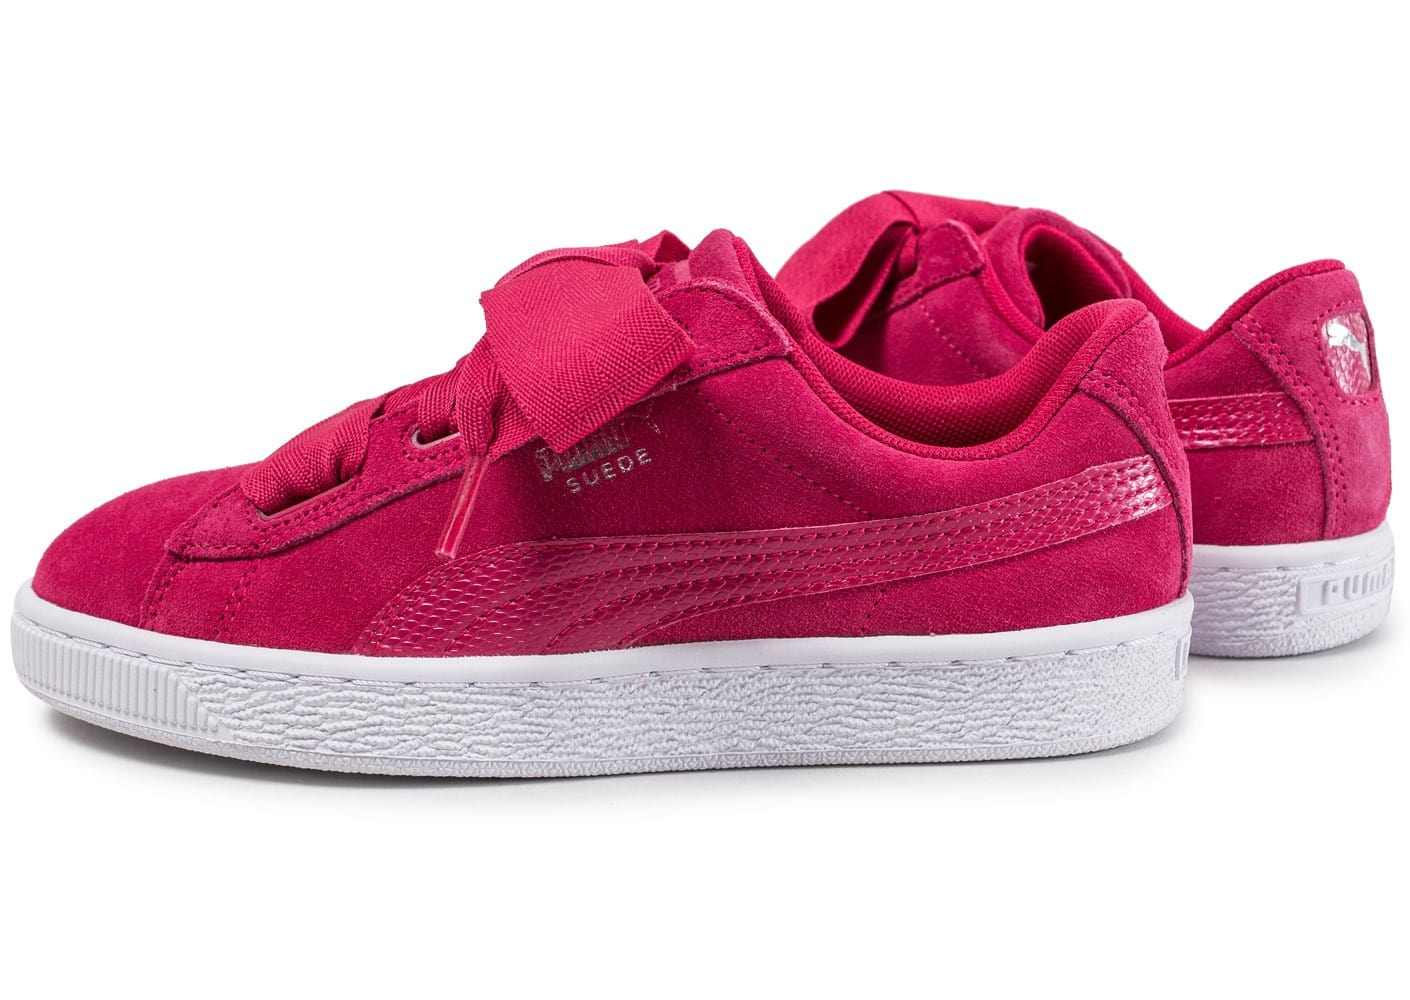 Snake Suede Chaussures Heart Chausport Rose Puma Enfant TlXZiuPOwk